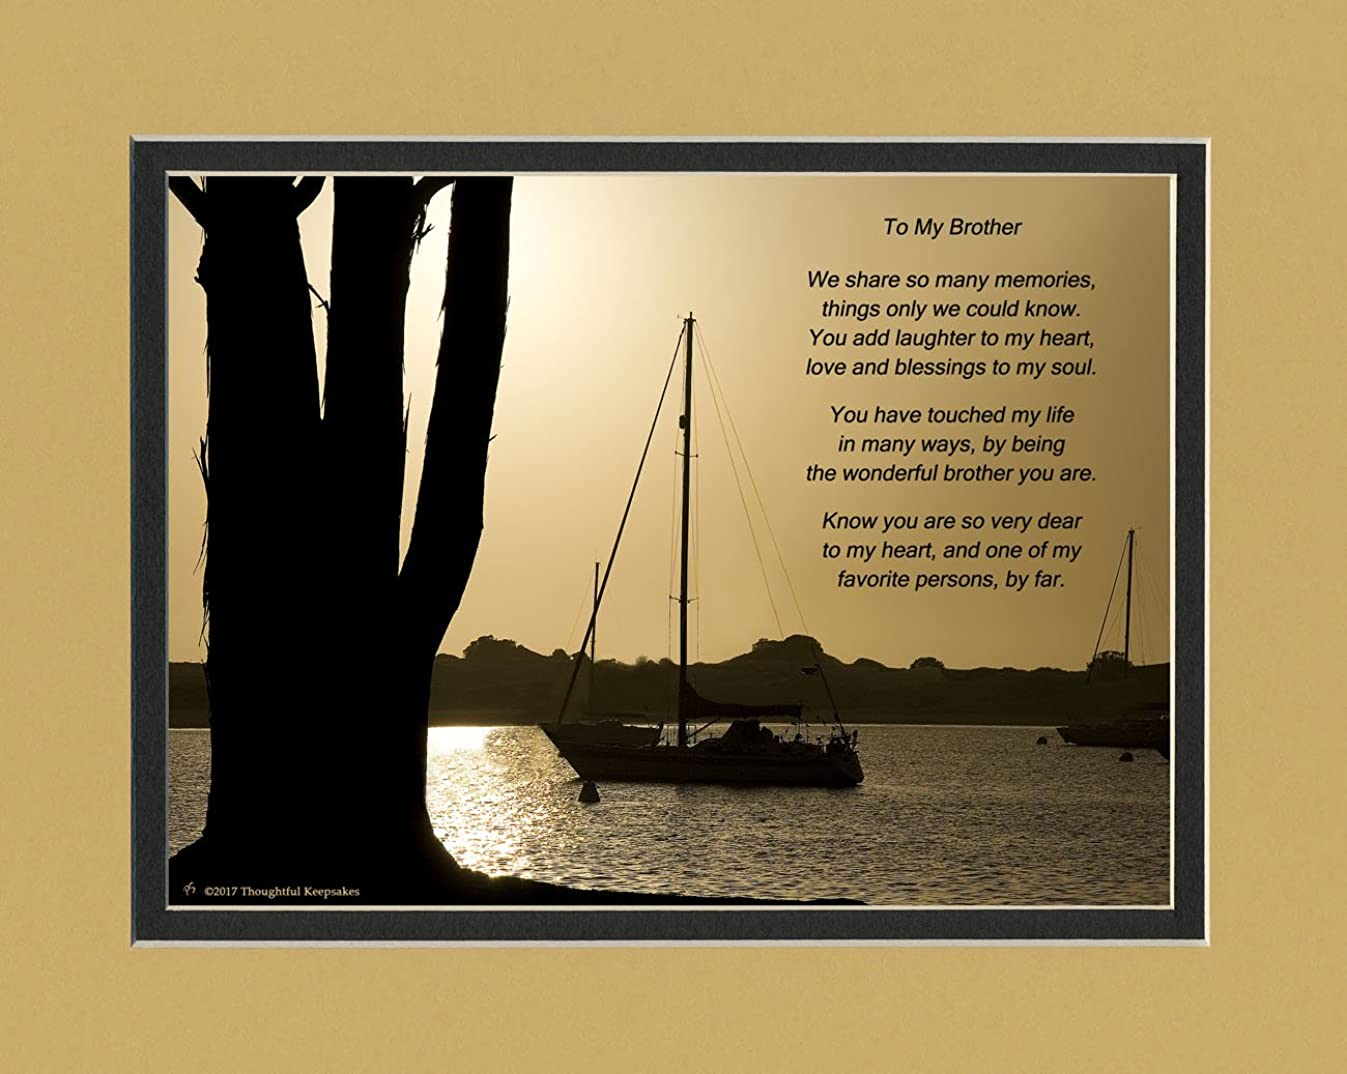 Brother Gift with You Have Touched My Life in Many Ways, By Being the Wonderful Brother You Are Poem. Boats at Dusk Photo, 8x10 Matted. Special Birthday or for Brother.